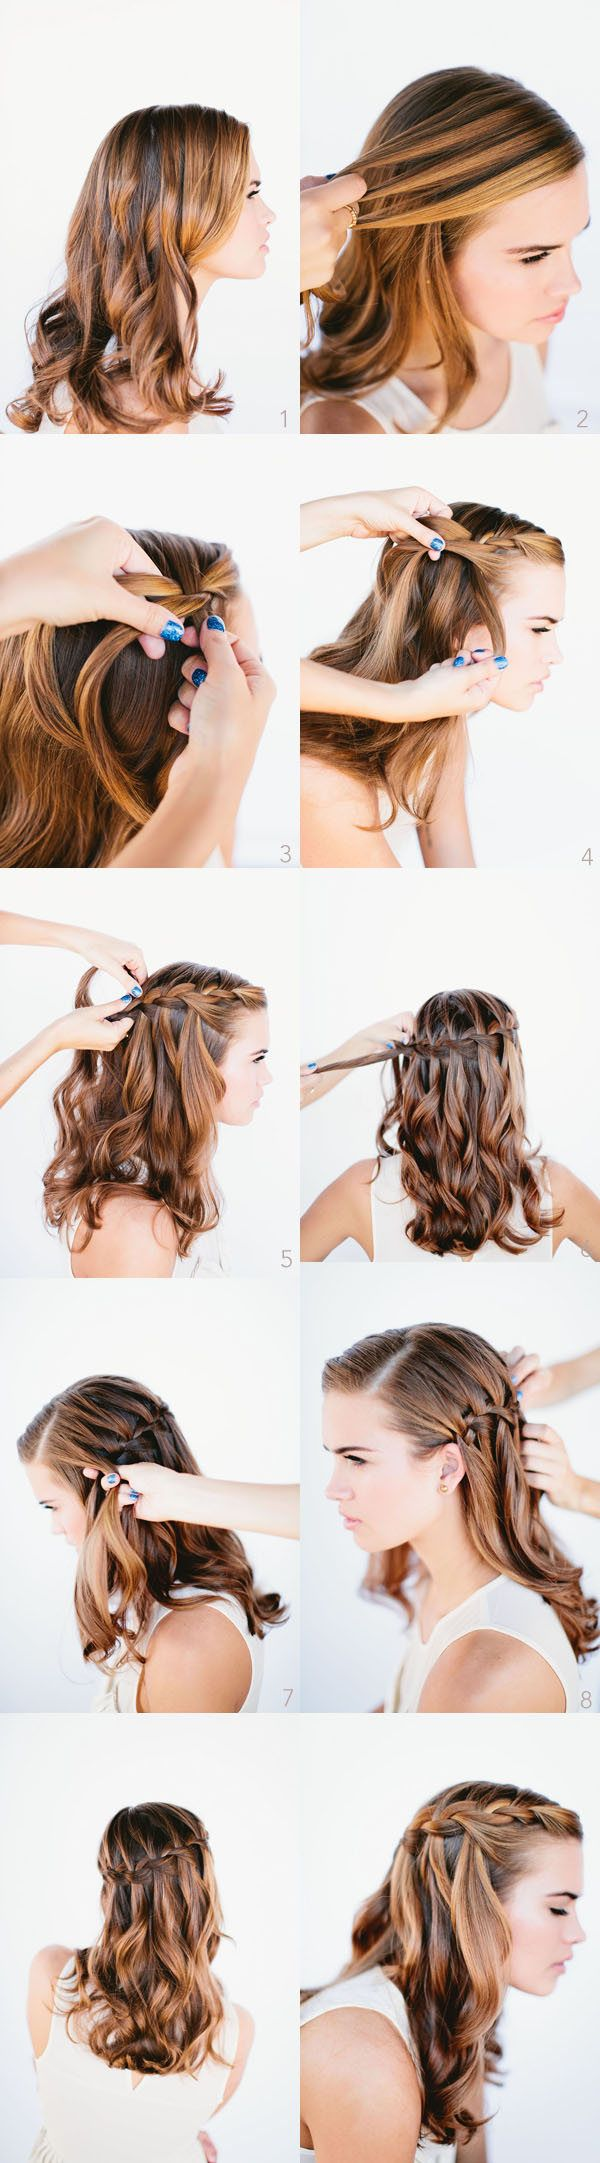 best all about hair images on pinterest hair dos